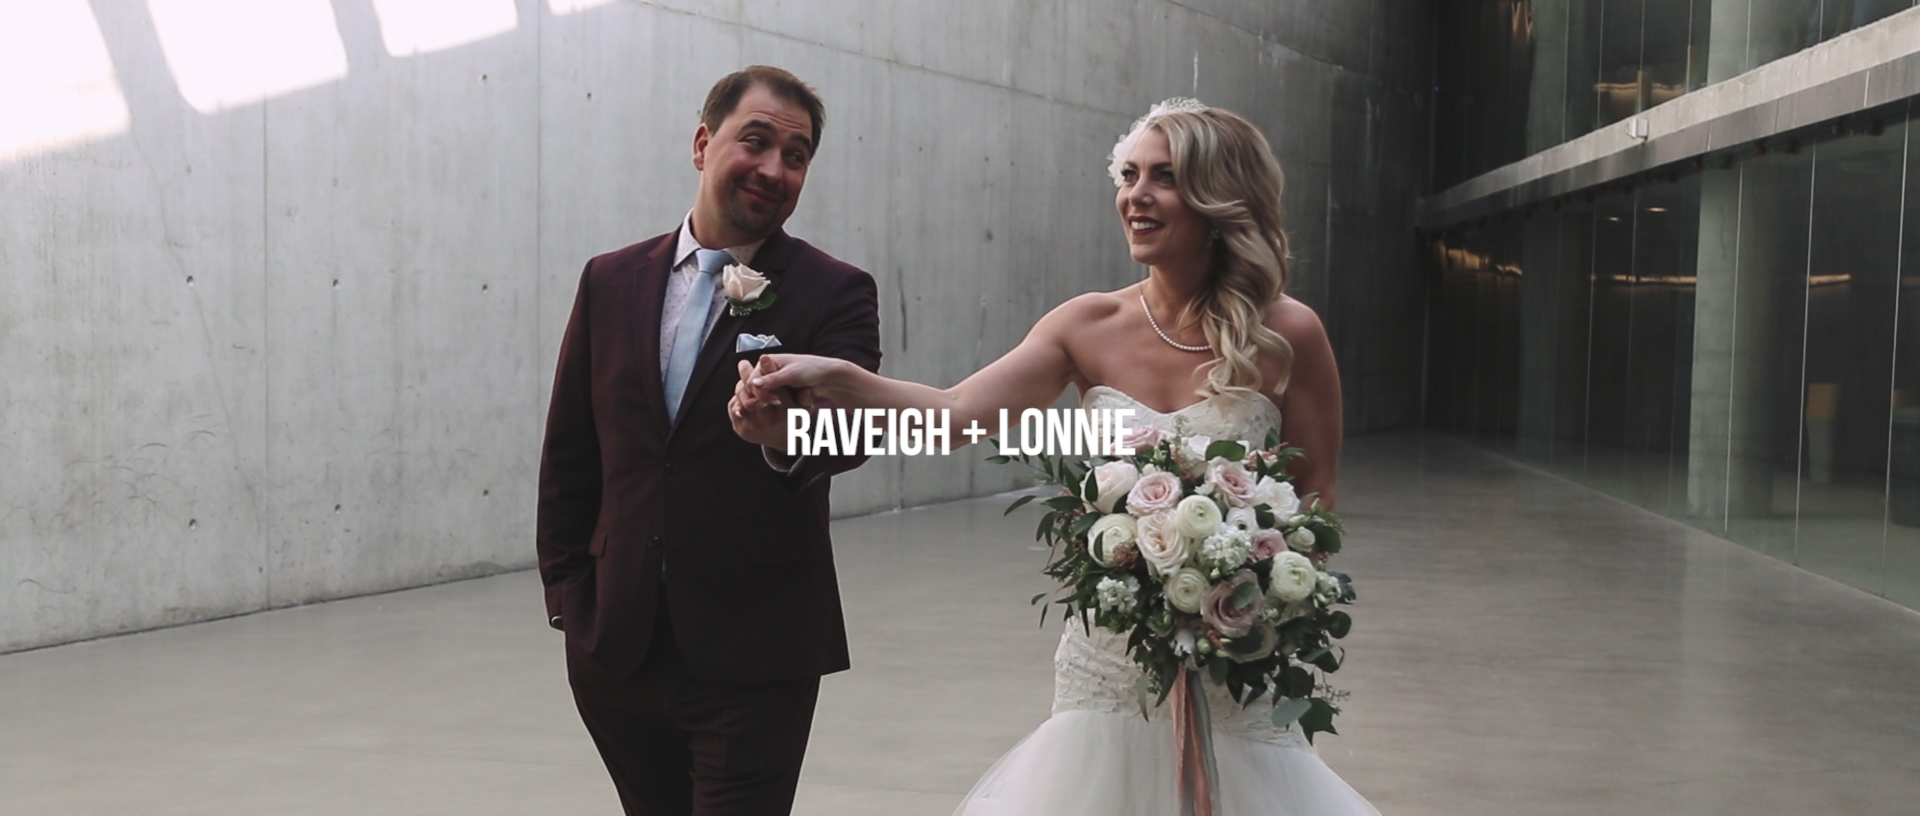 Raveigh + Lonnie | Calgary, Canada | Starbelly